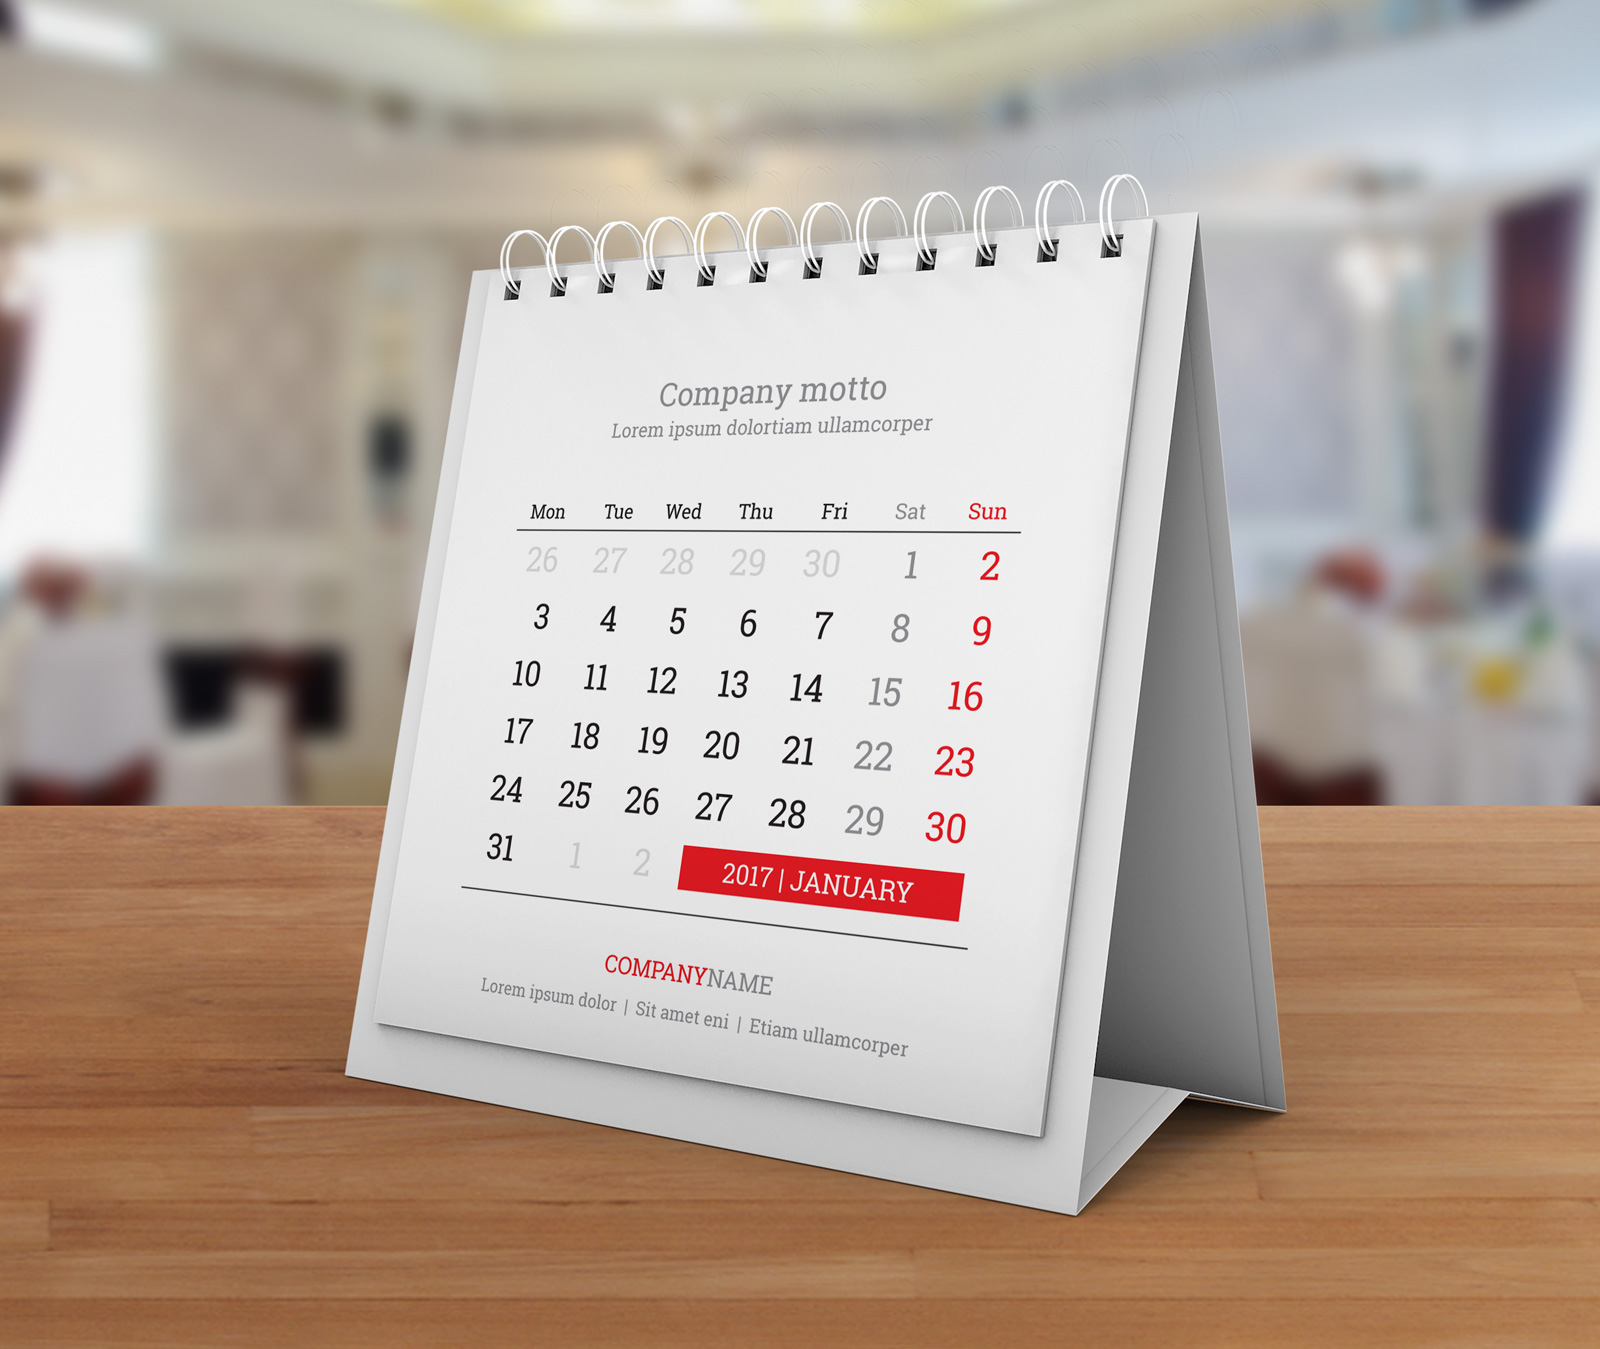 Desk Tent Calendar Kb40w1  Template  Calendar Template. Dining Tables For Sale. Twin Loft Bed With Desk Plans. White Mirrored Chest Of Drawers. Wooden Barrel Table. Cbc News Desk. Crib Changing Table Dresser Combo. Desk Sound Dividers. Babyletto Hudson Changing Table